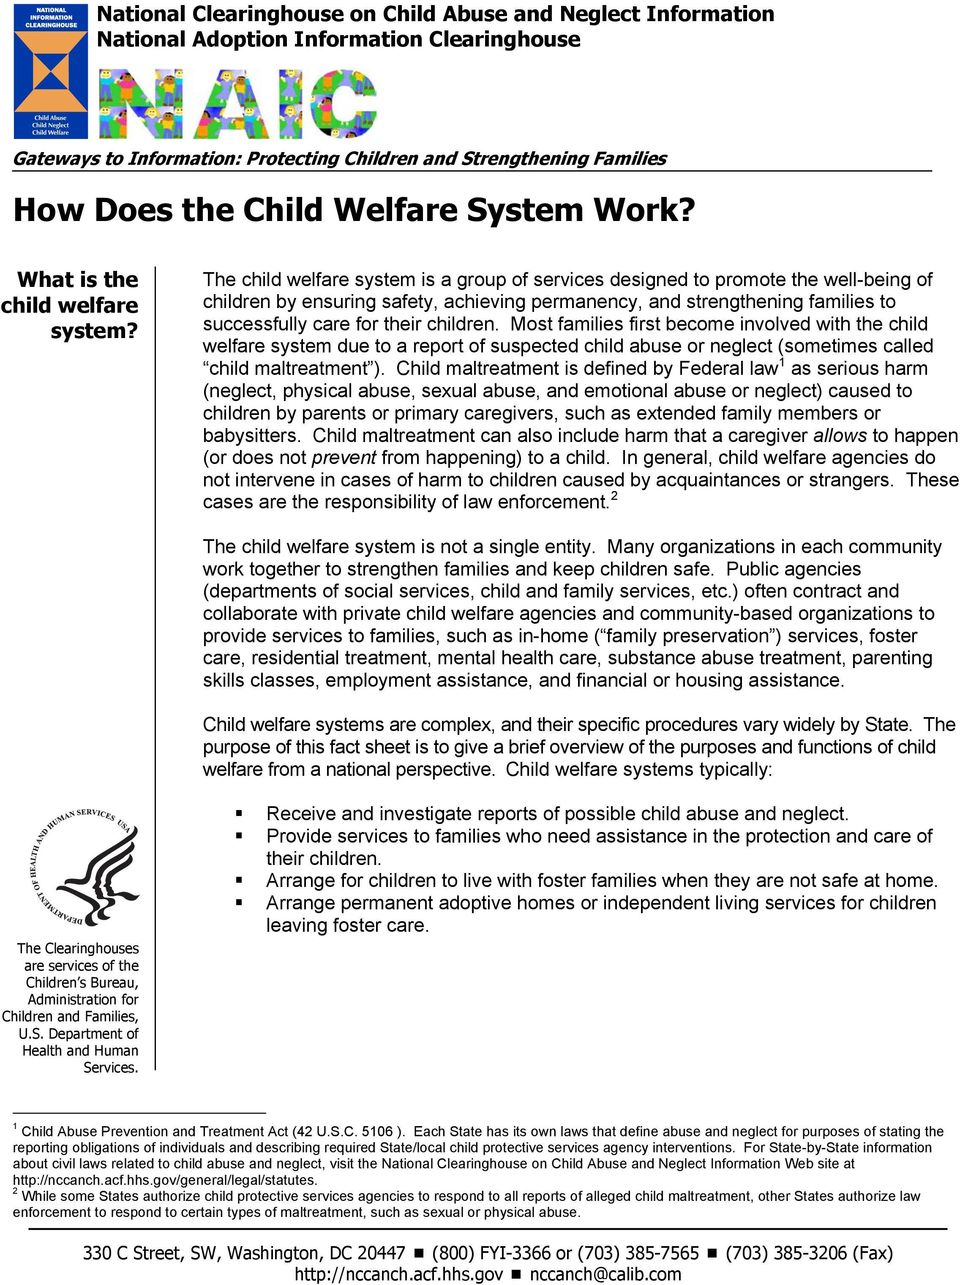 The child welfare system is a group of services designed to promote the well-being of children by ensuring safety, achieving permanency, and strengthening families to successfully care for their